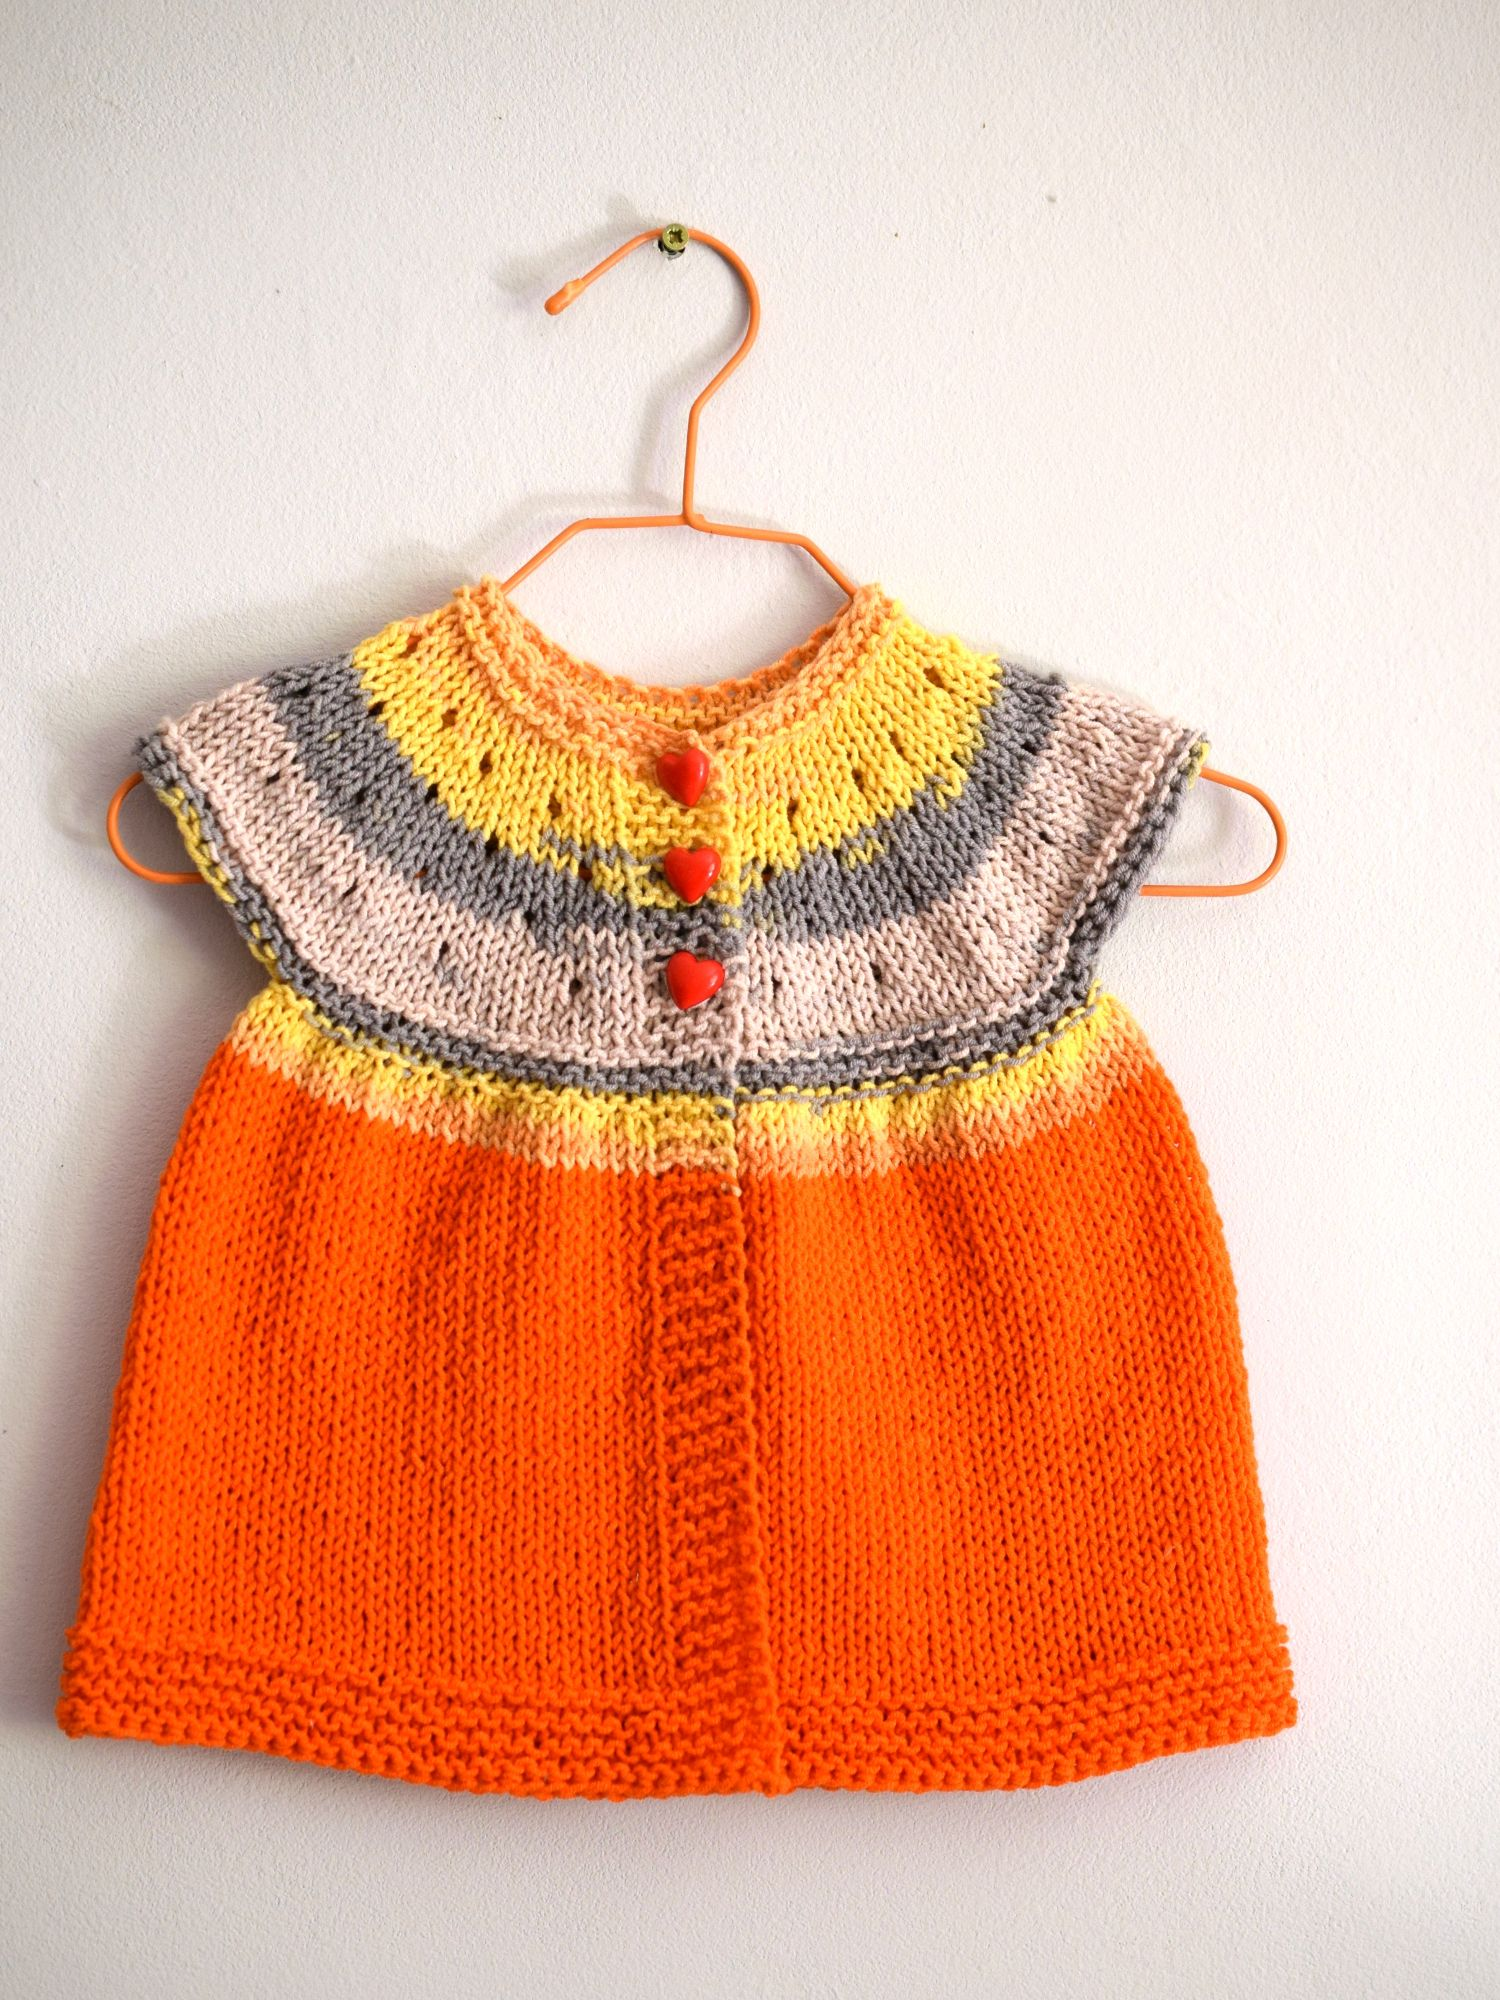 This Lovely Orange Baby Cardigan Was Hand Knit By Me From Soft